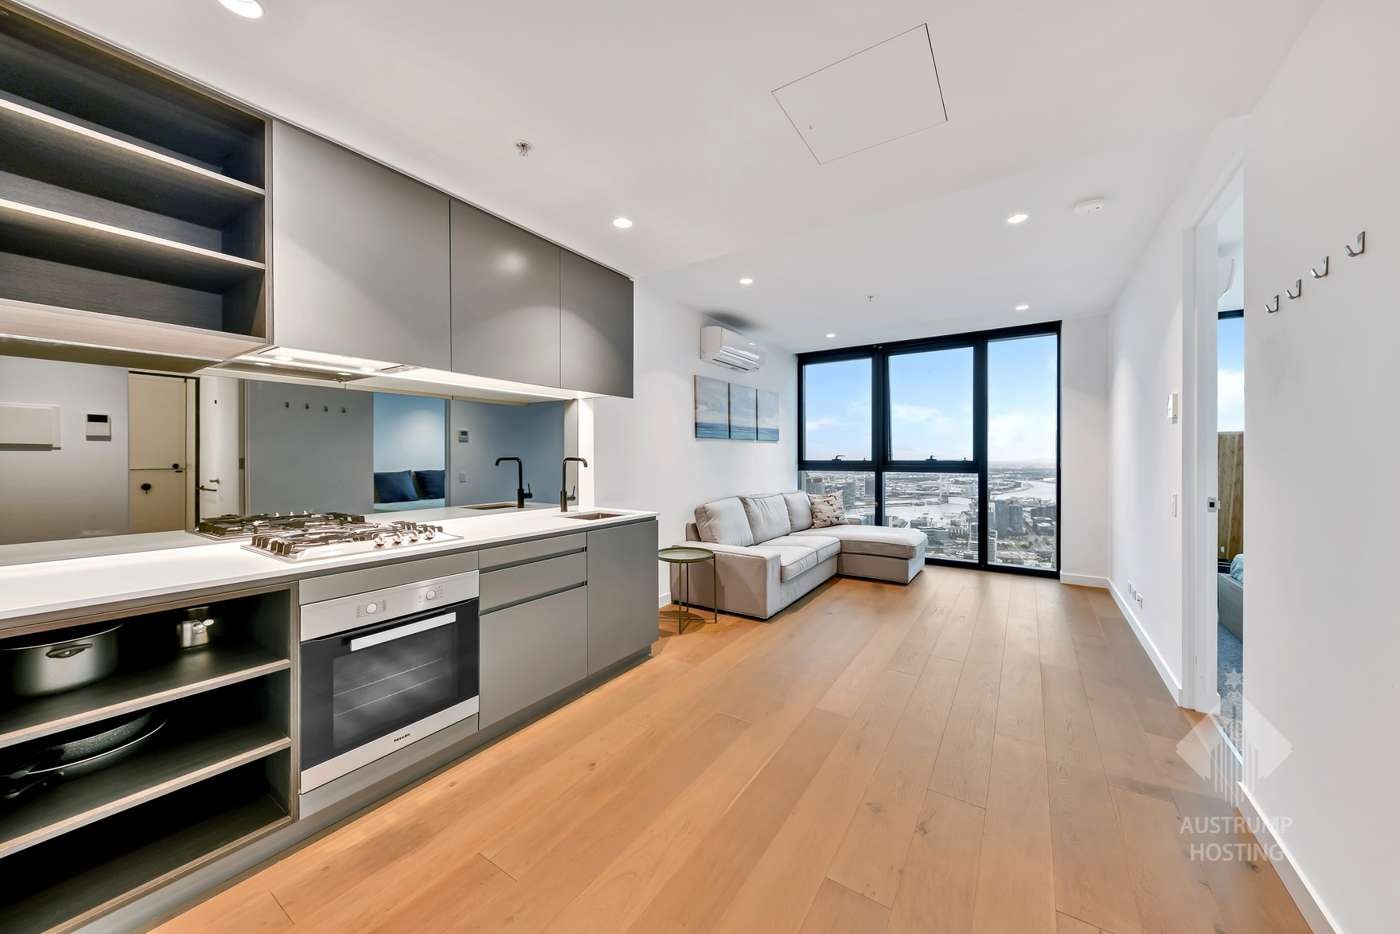 Main view of Homely apartment listing, 6707/462 Elizabeth Street, Melbourne VIC 3000